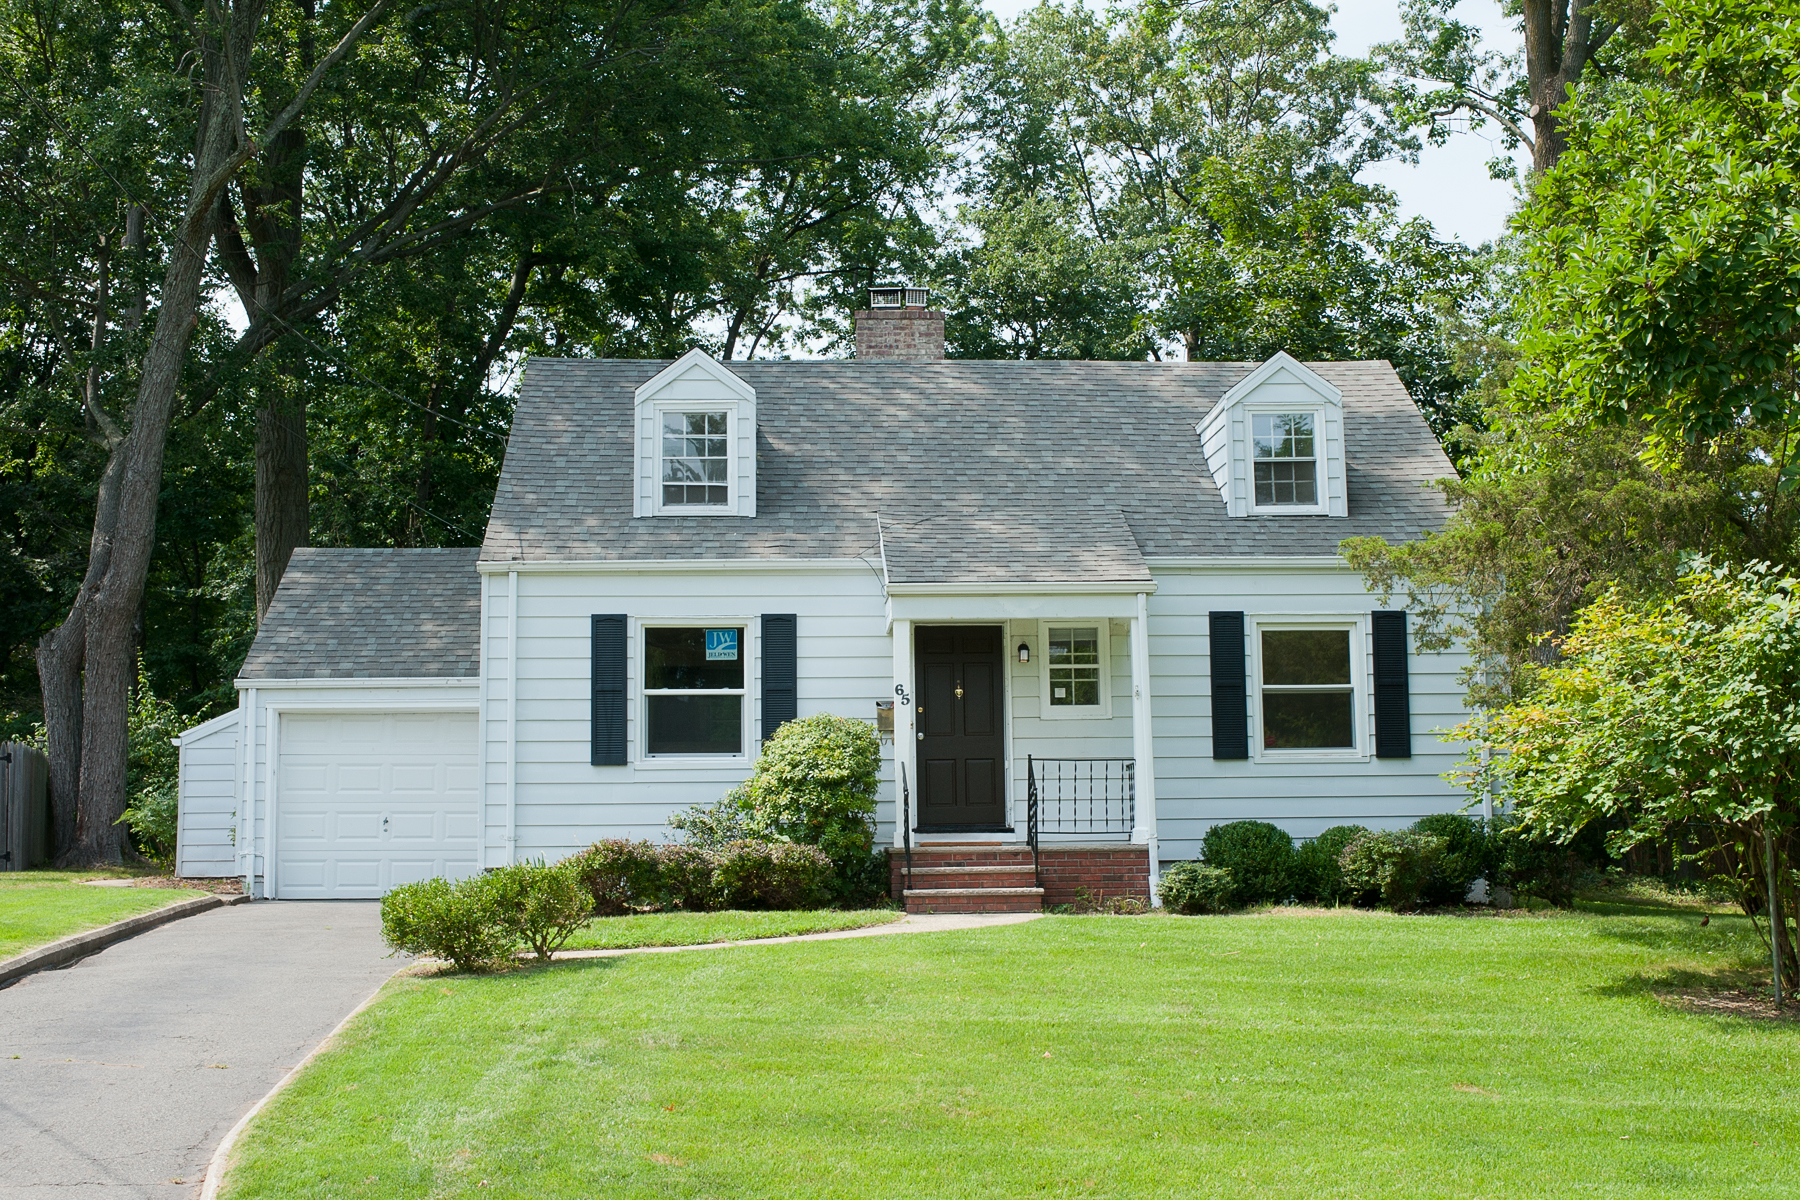 Single Family Home for Rent at Adorable Cape Cod 65 Woodcrest Circle Springfield, New Jersey 07081 United States